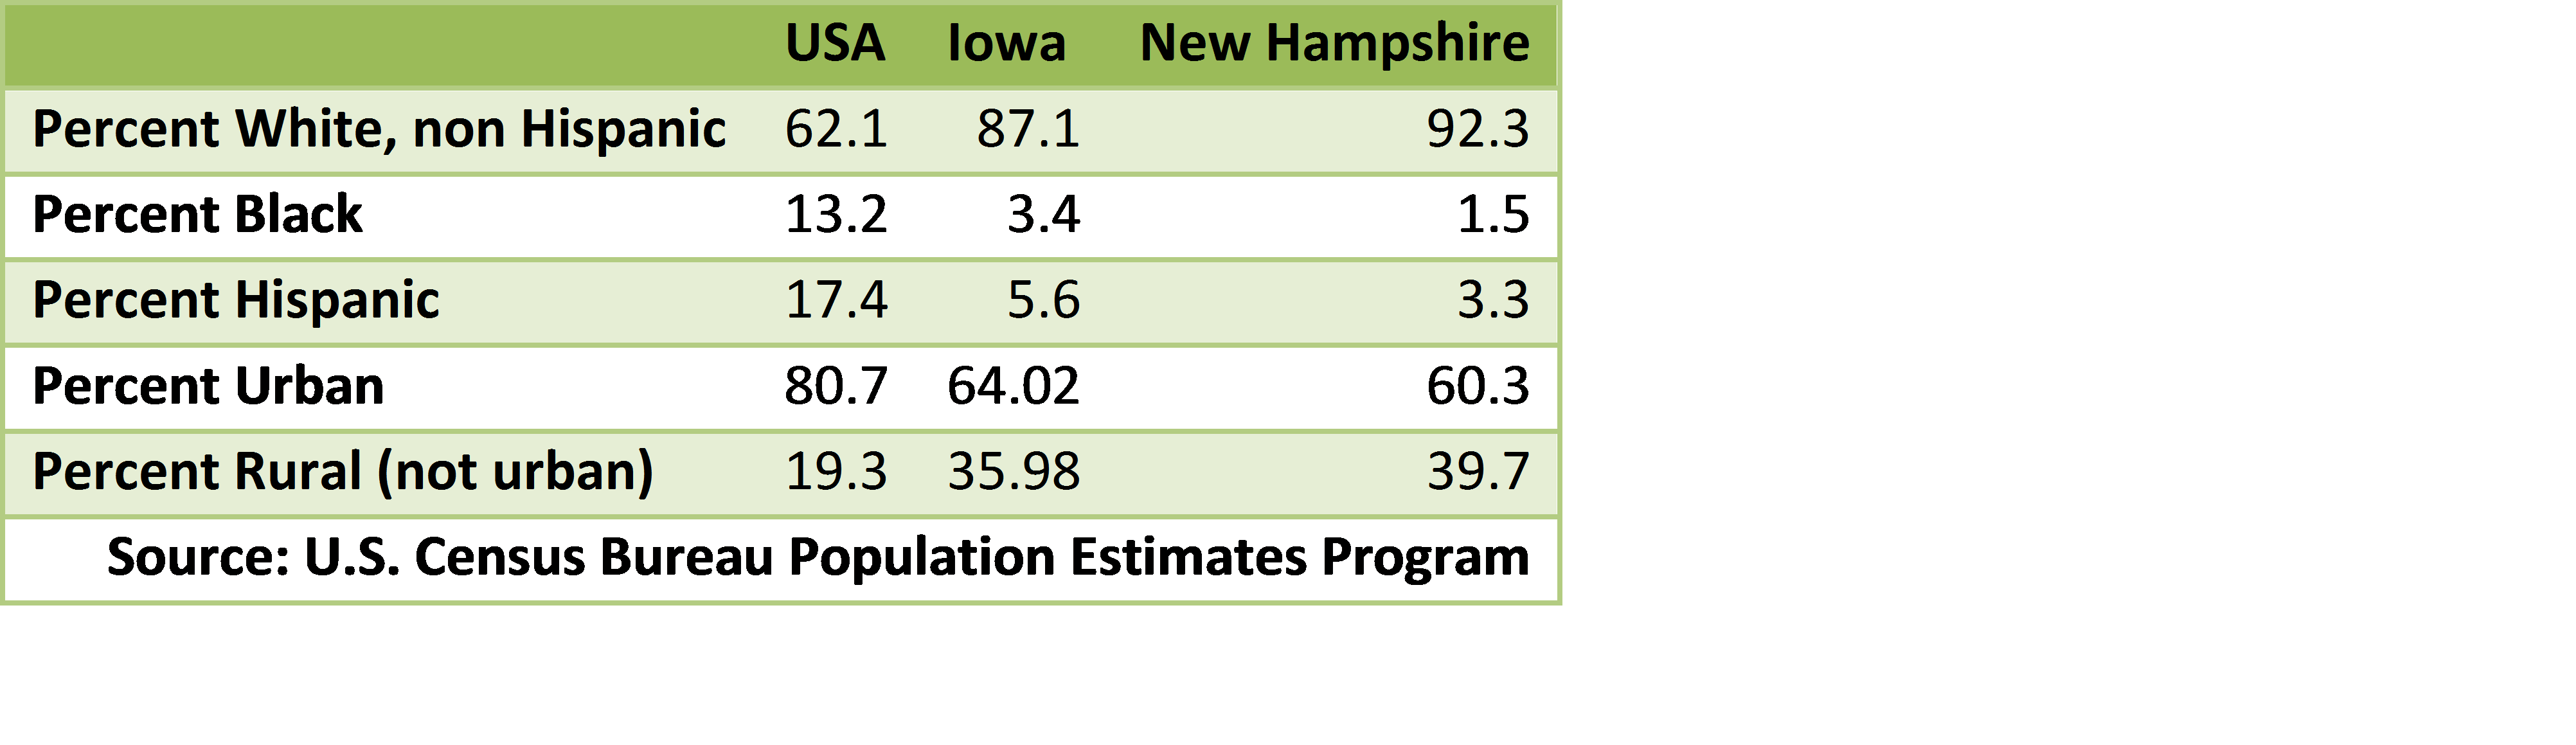 Table 3: Population Characteristics of Iowa and New Hampshire compared to the United States as a whole